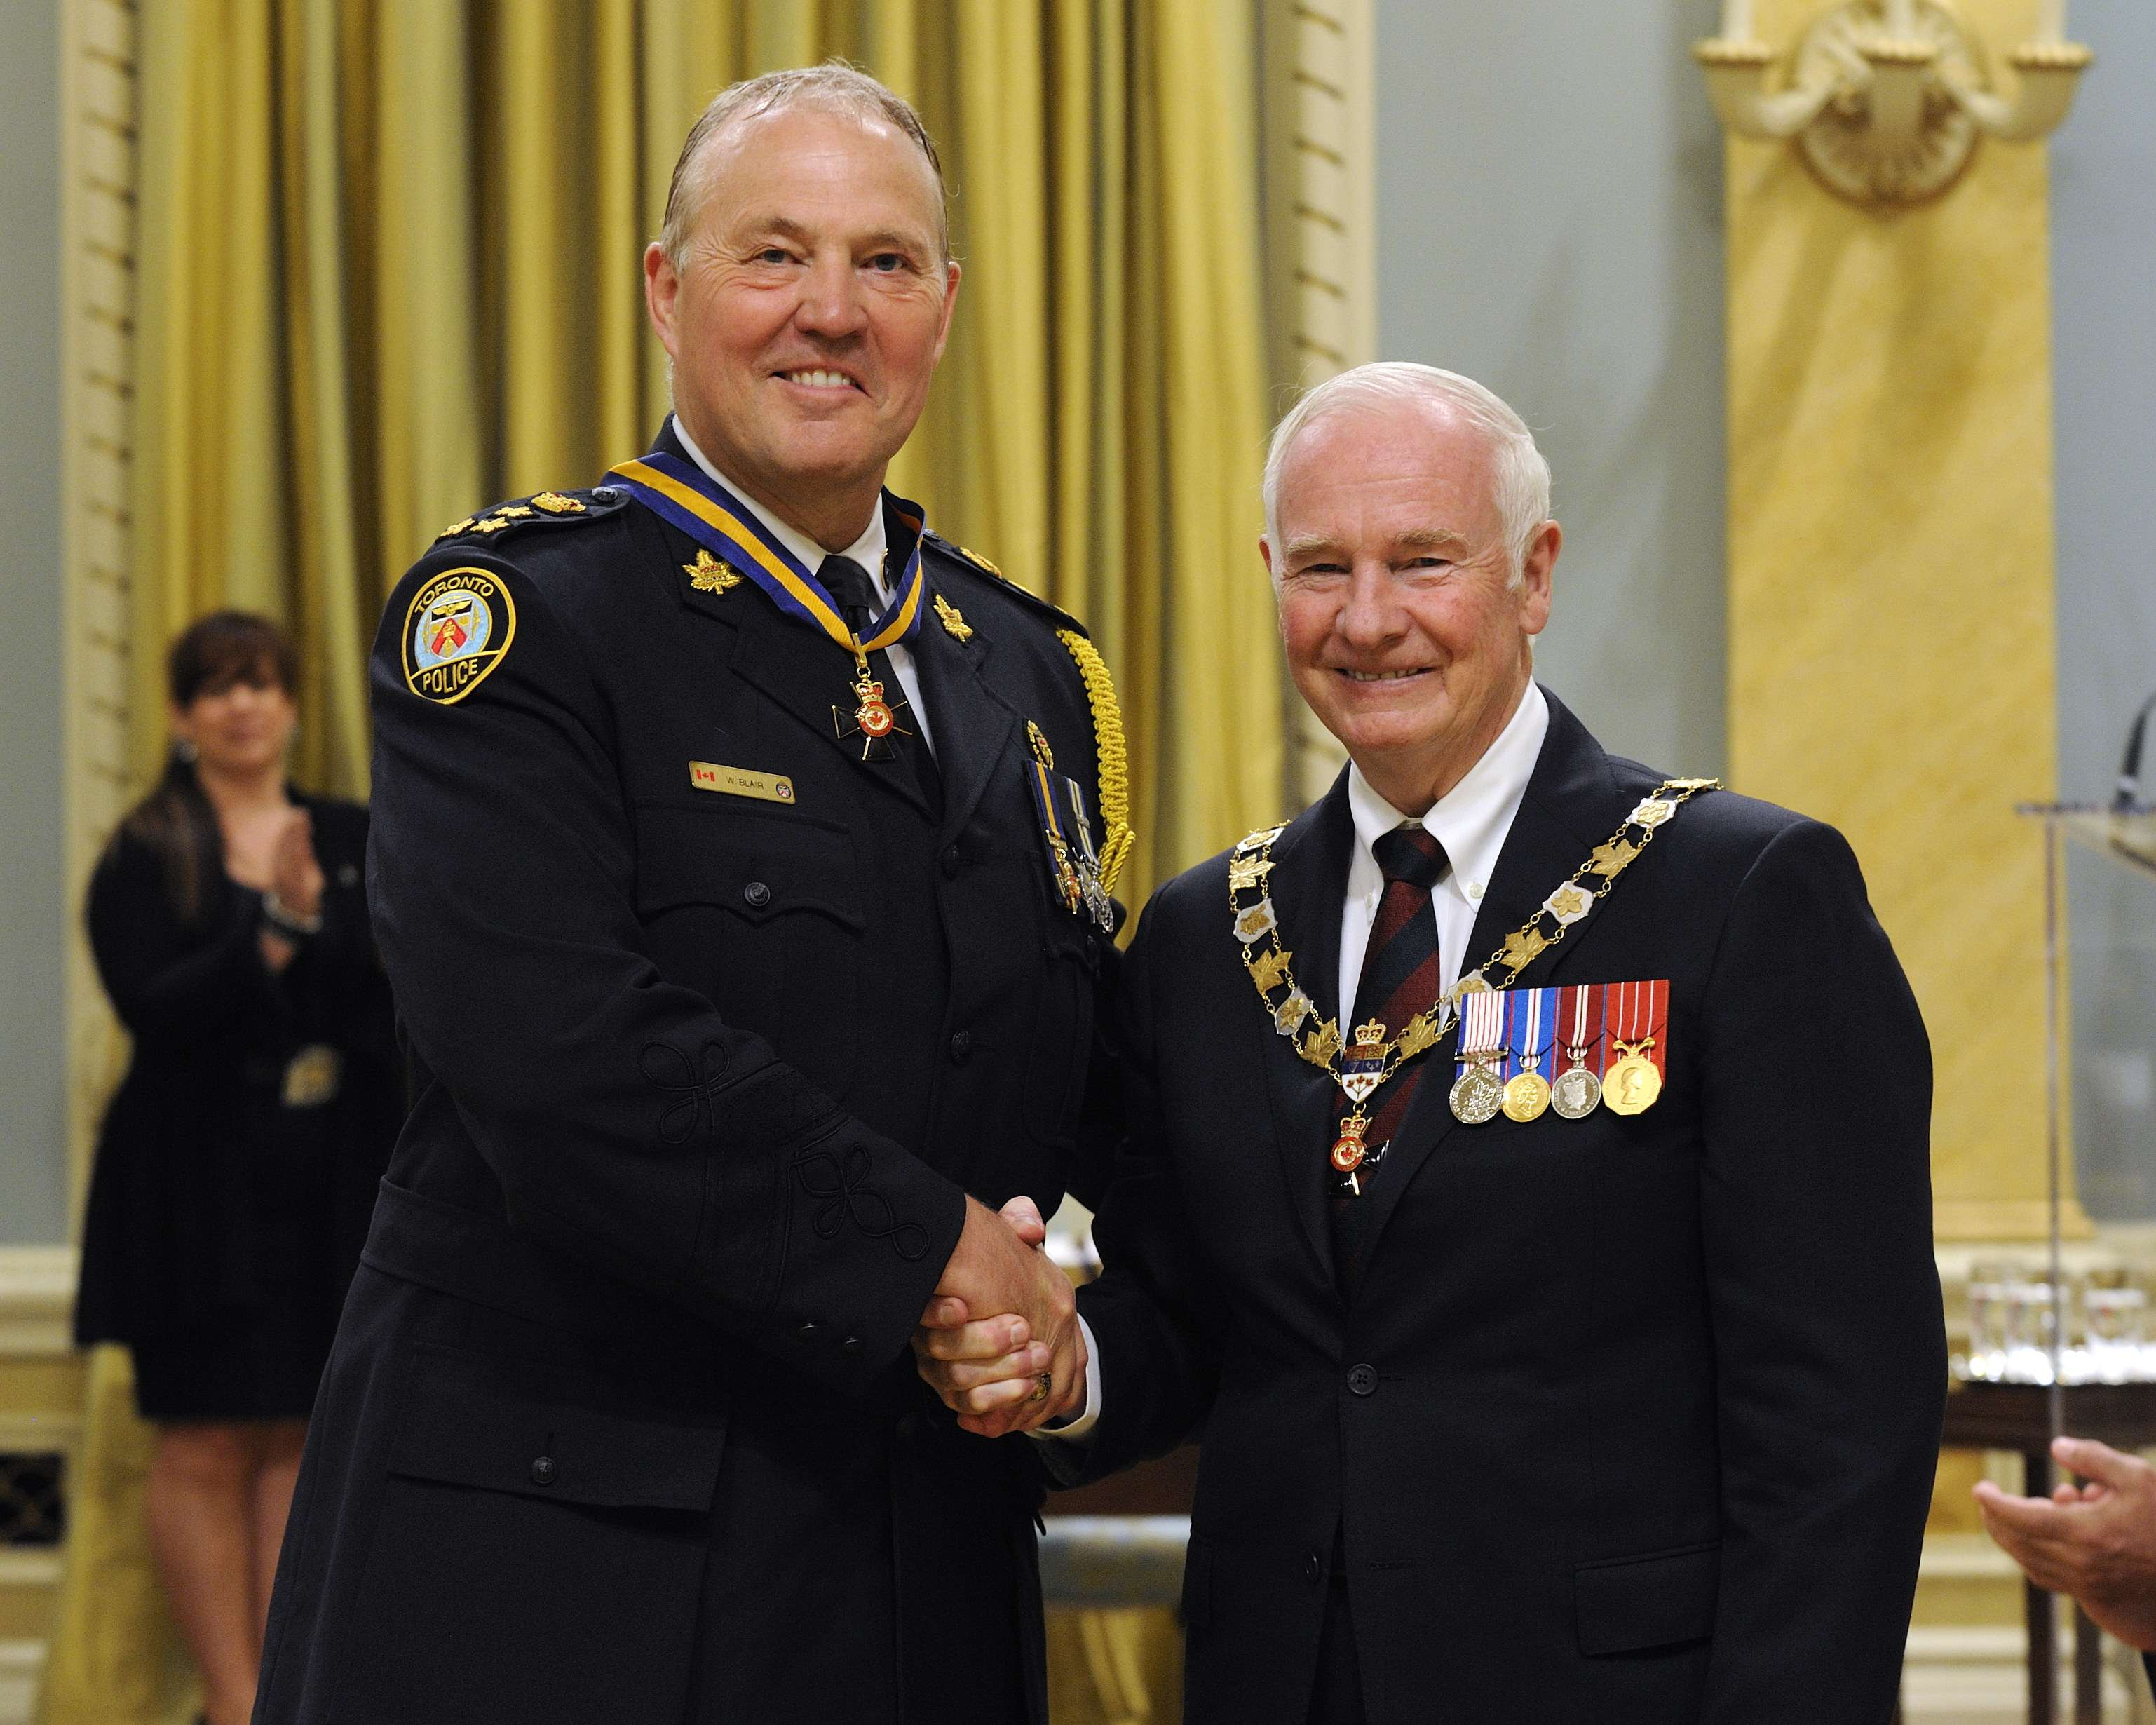 His Excellency presented the Order of Merit of the Police Forces at the Commander level (C.O.M.) to Chief William Sterling Blair, C.O.M., of the Toronto Police Service, Ontario. This is a promotion within the Order.